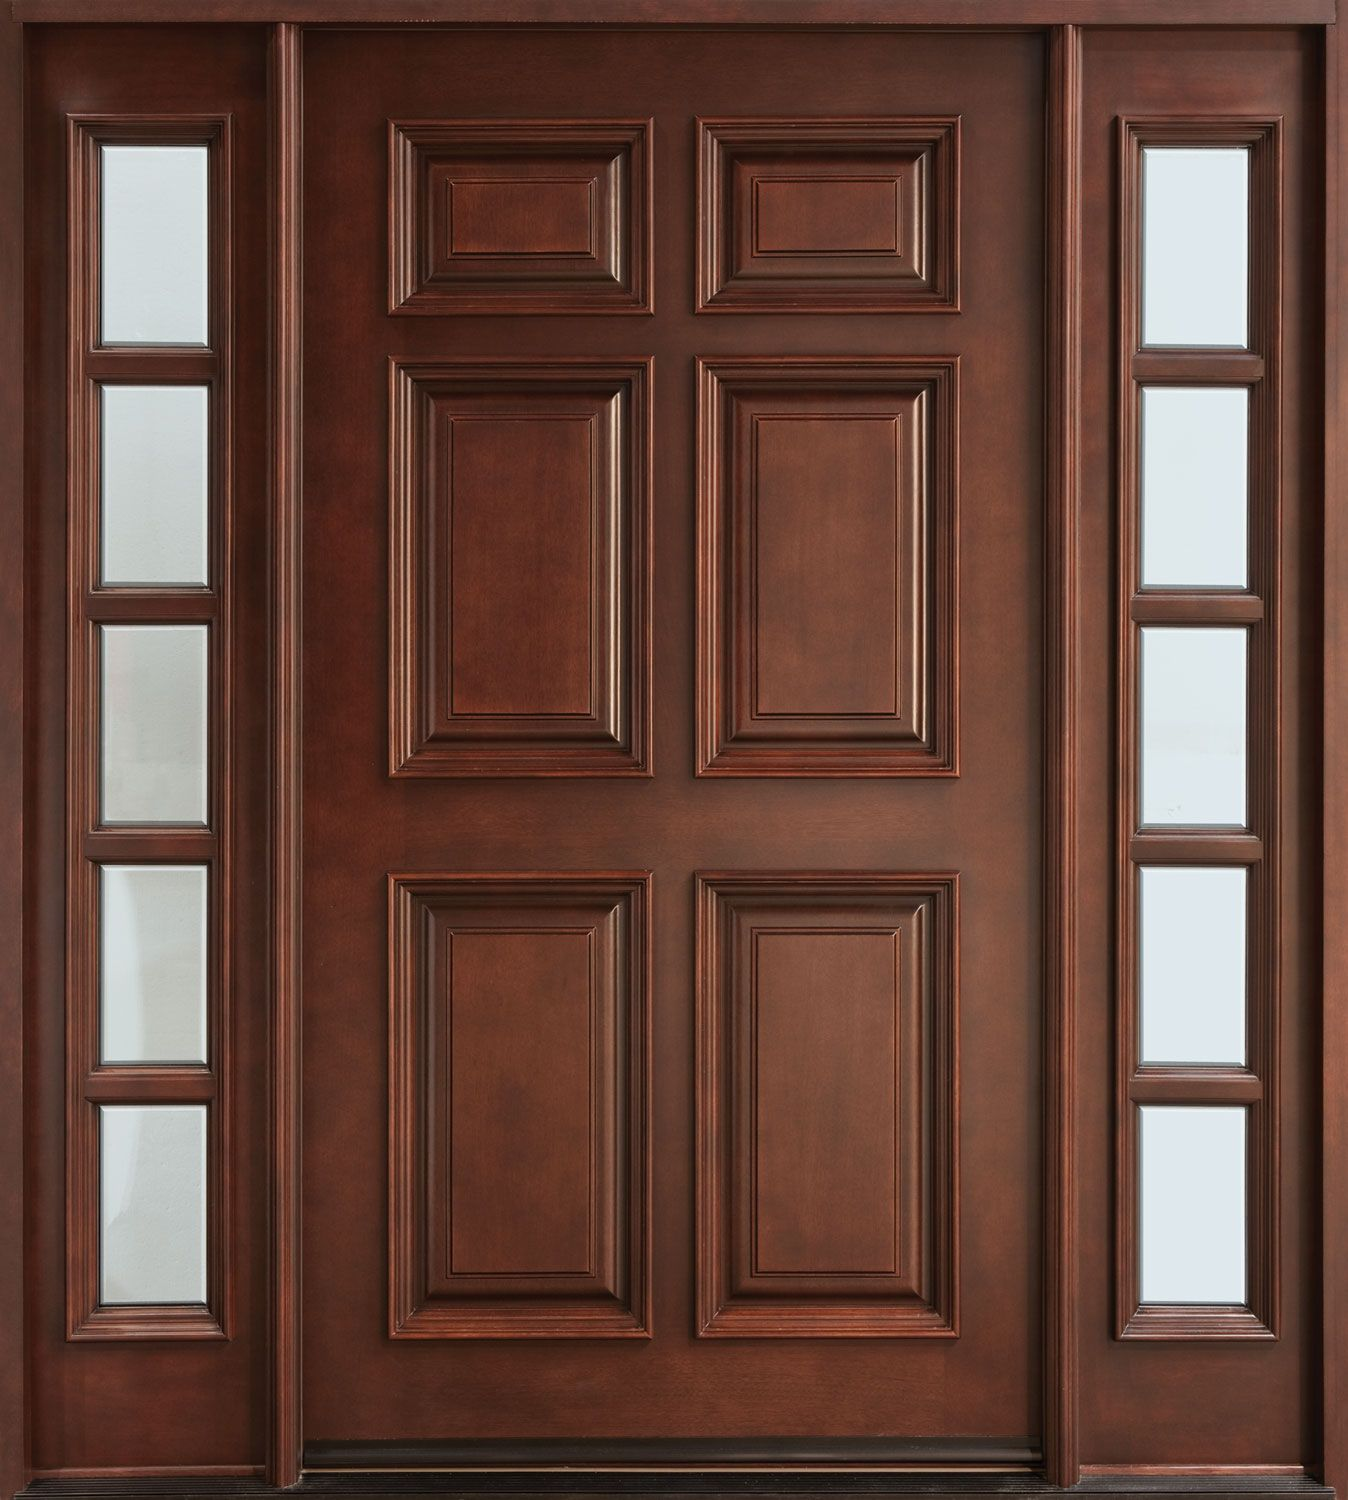 Wood Doors Simpson Door has built handcrafted solid wood doors ...